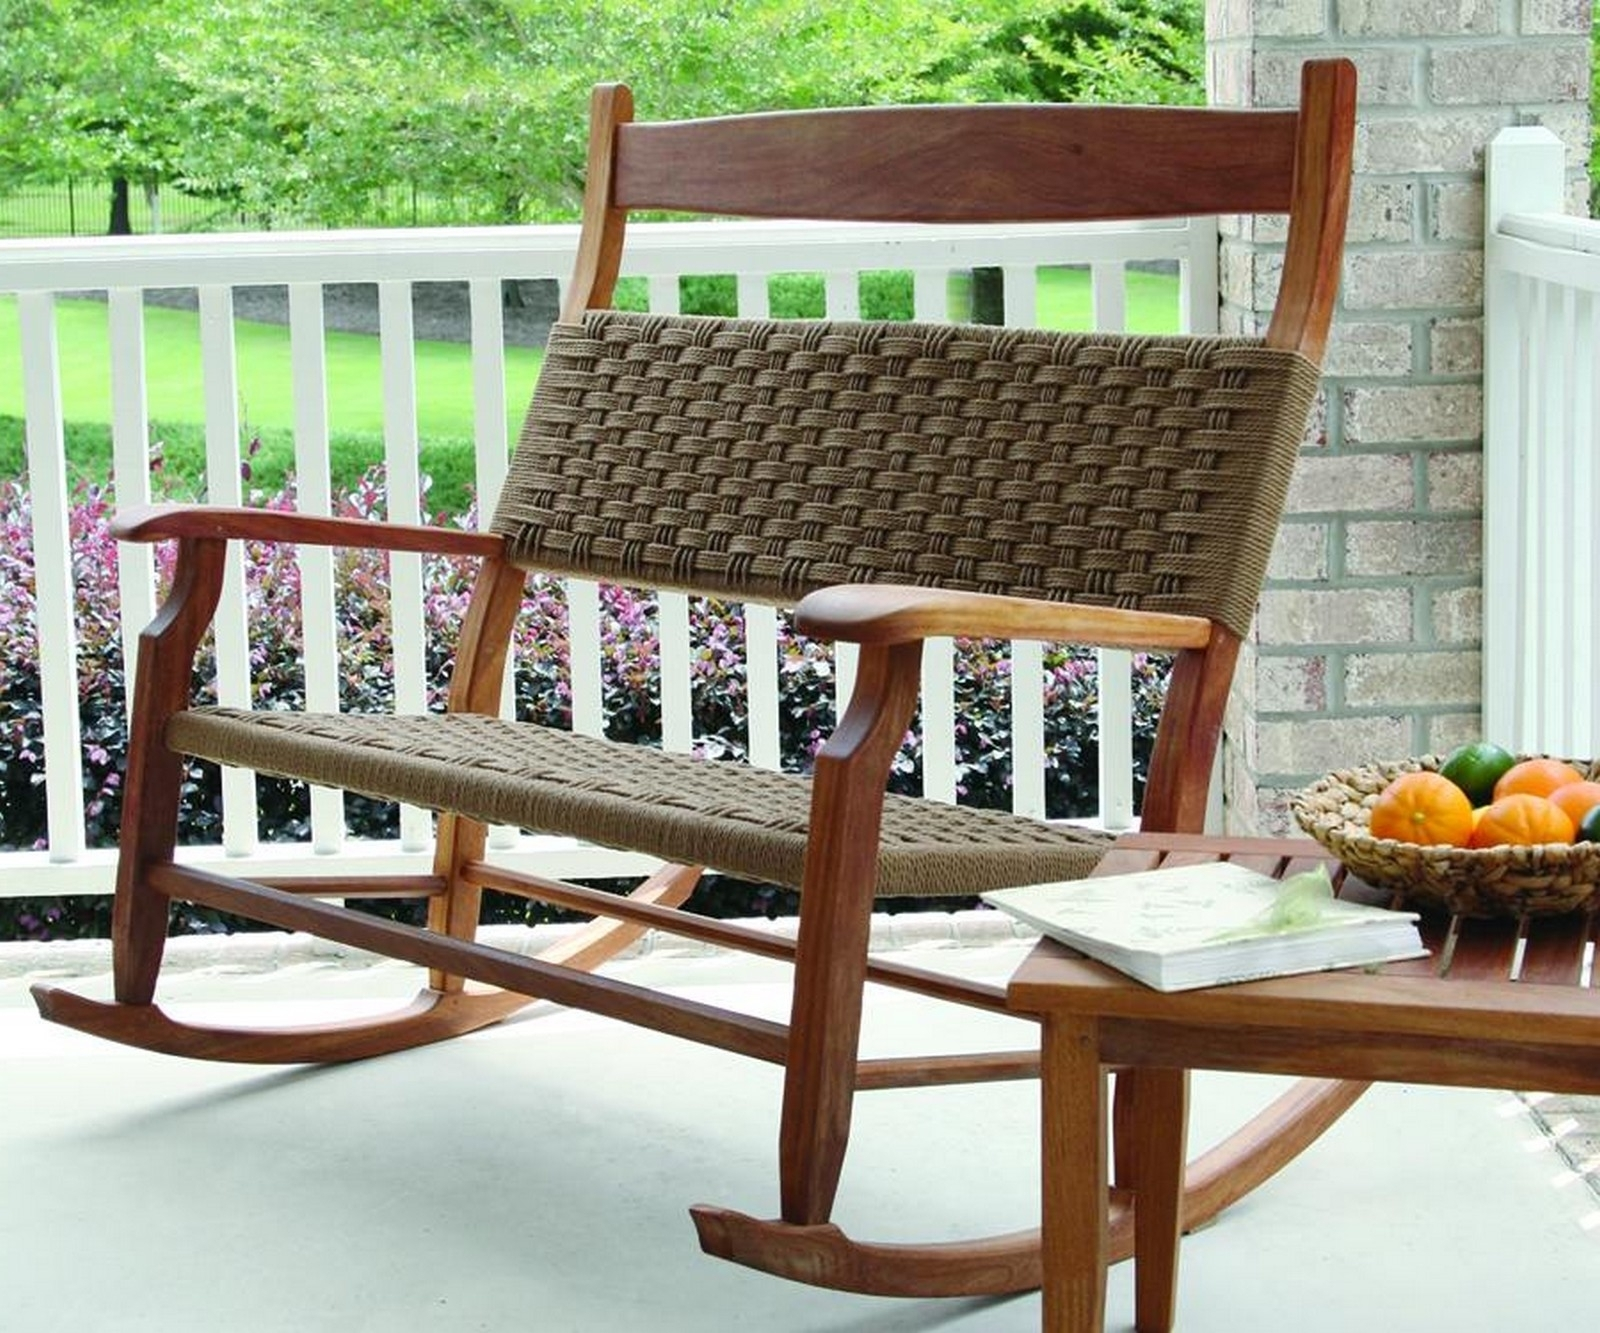 Extra Large Rocking Chairs For Small Patio Design With White Deck Throughout Small Patio Rocking Chairs (#4 of 15)